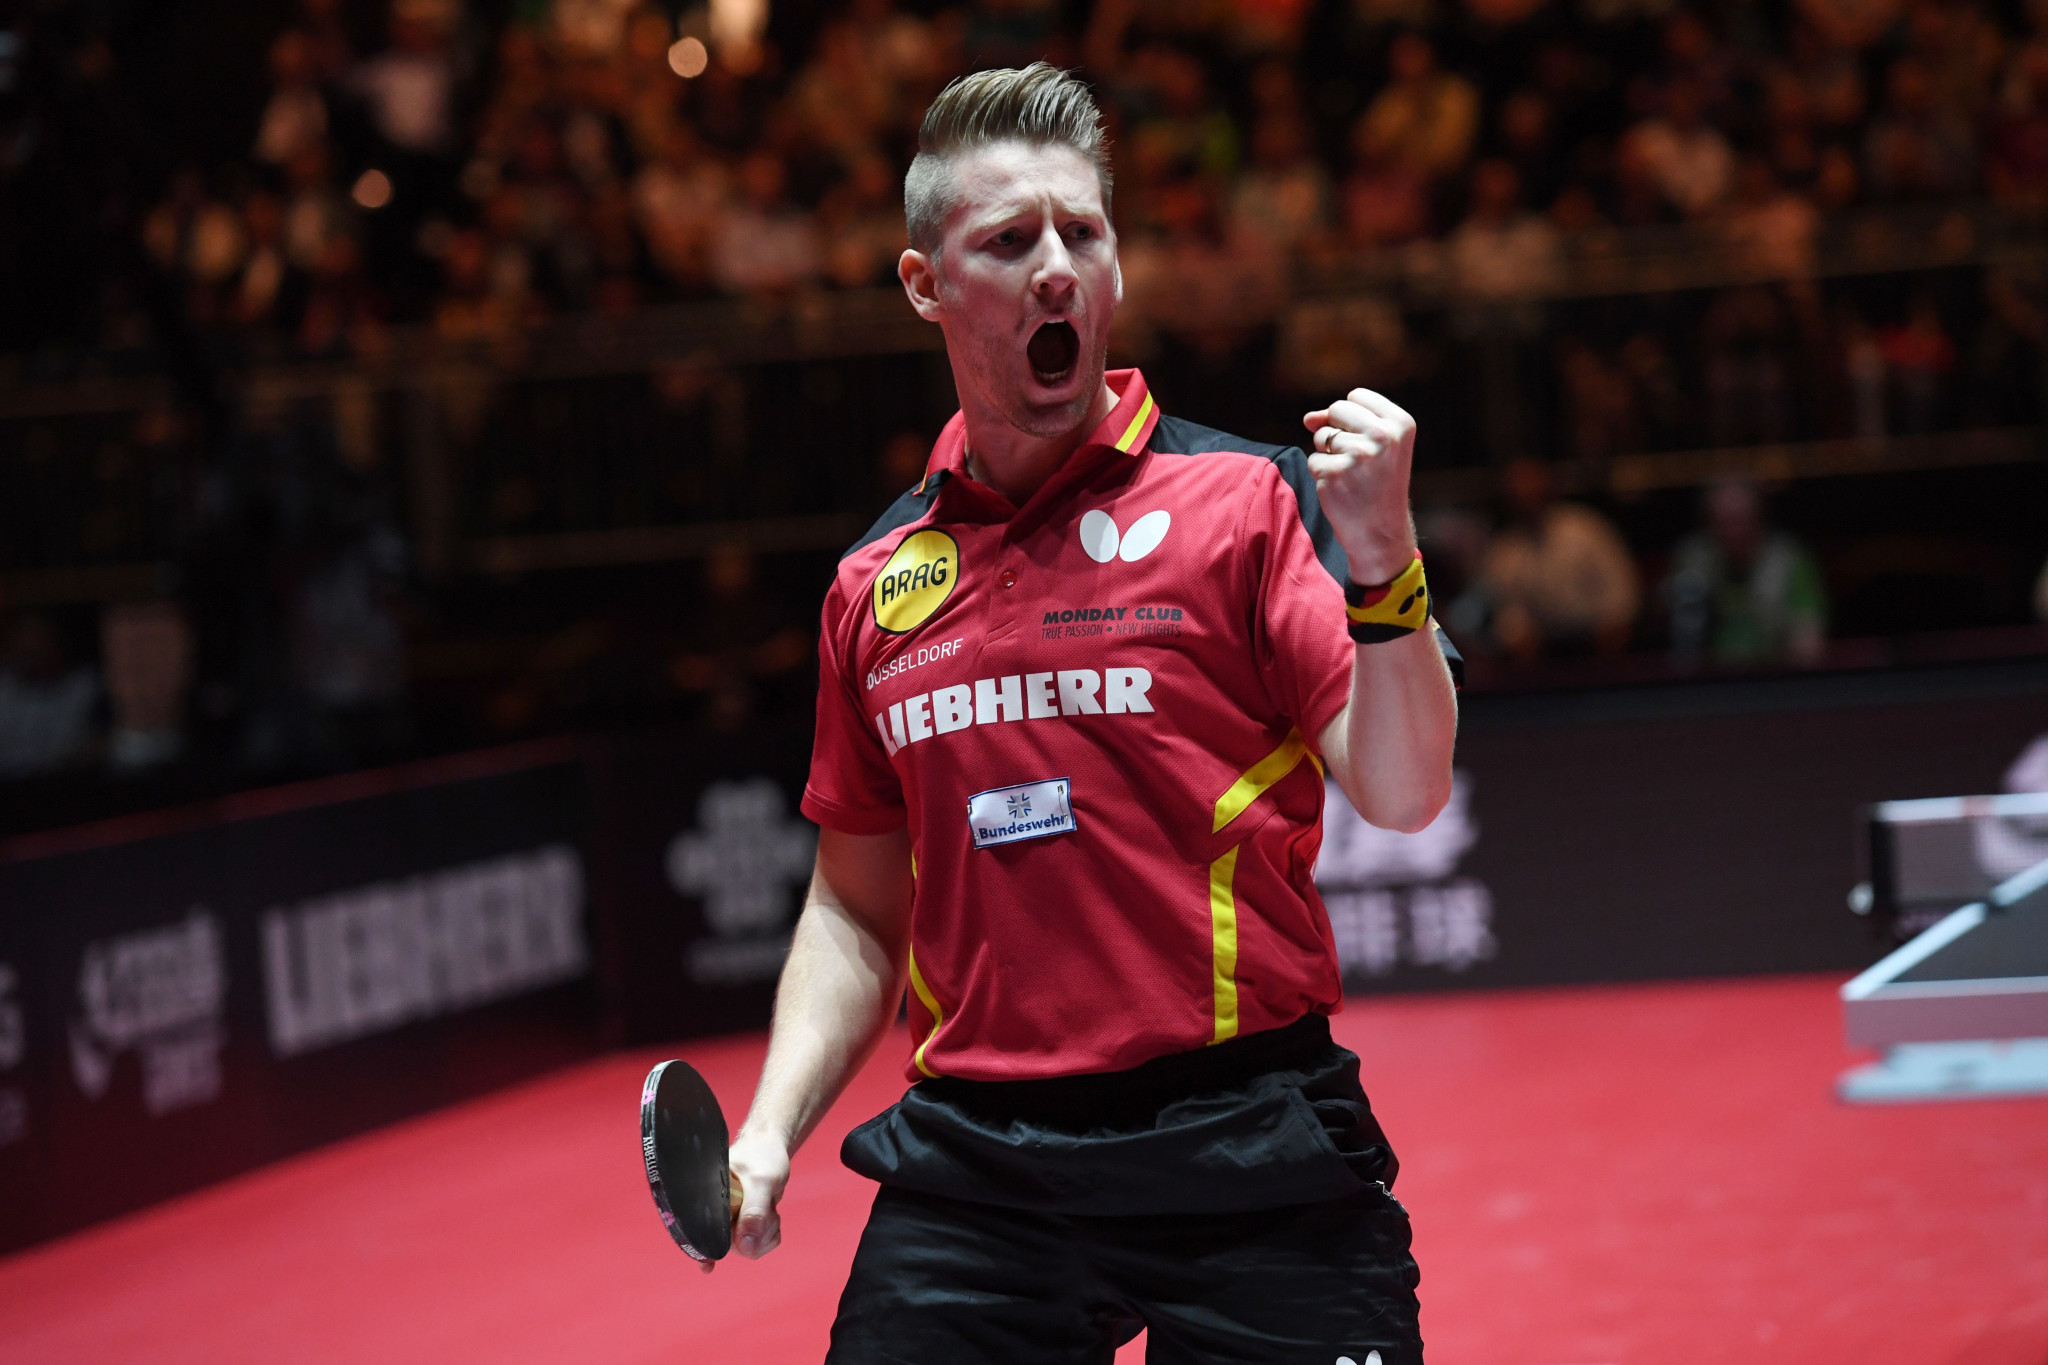 World number 42 Ruwen Filus of Germany reached the final of the WTT Star Contender in Doha after a six game victory over Darko Jorgic ©Getty Images